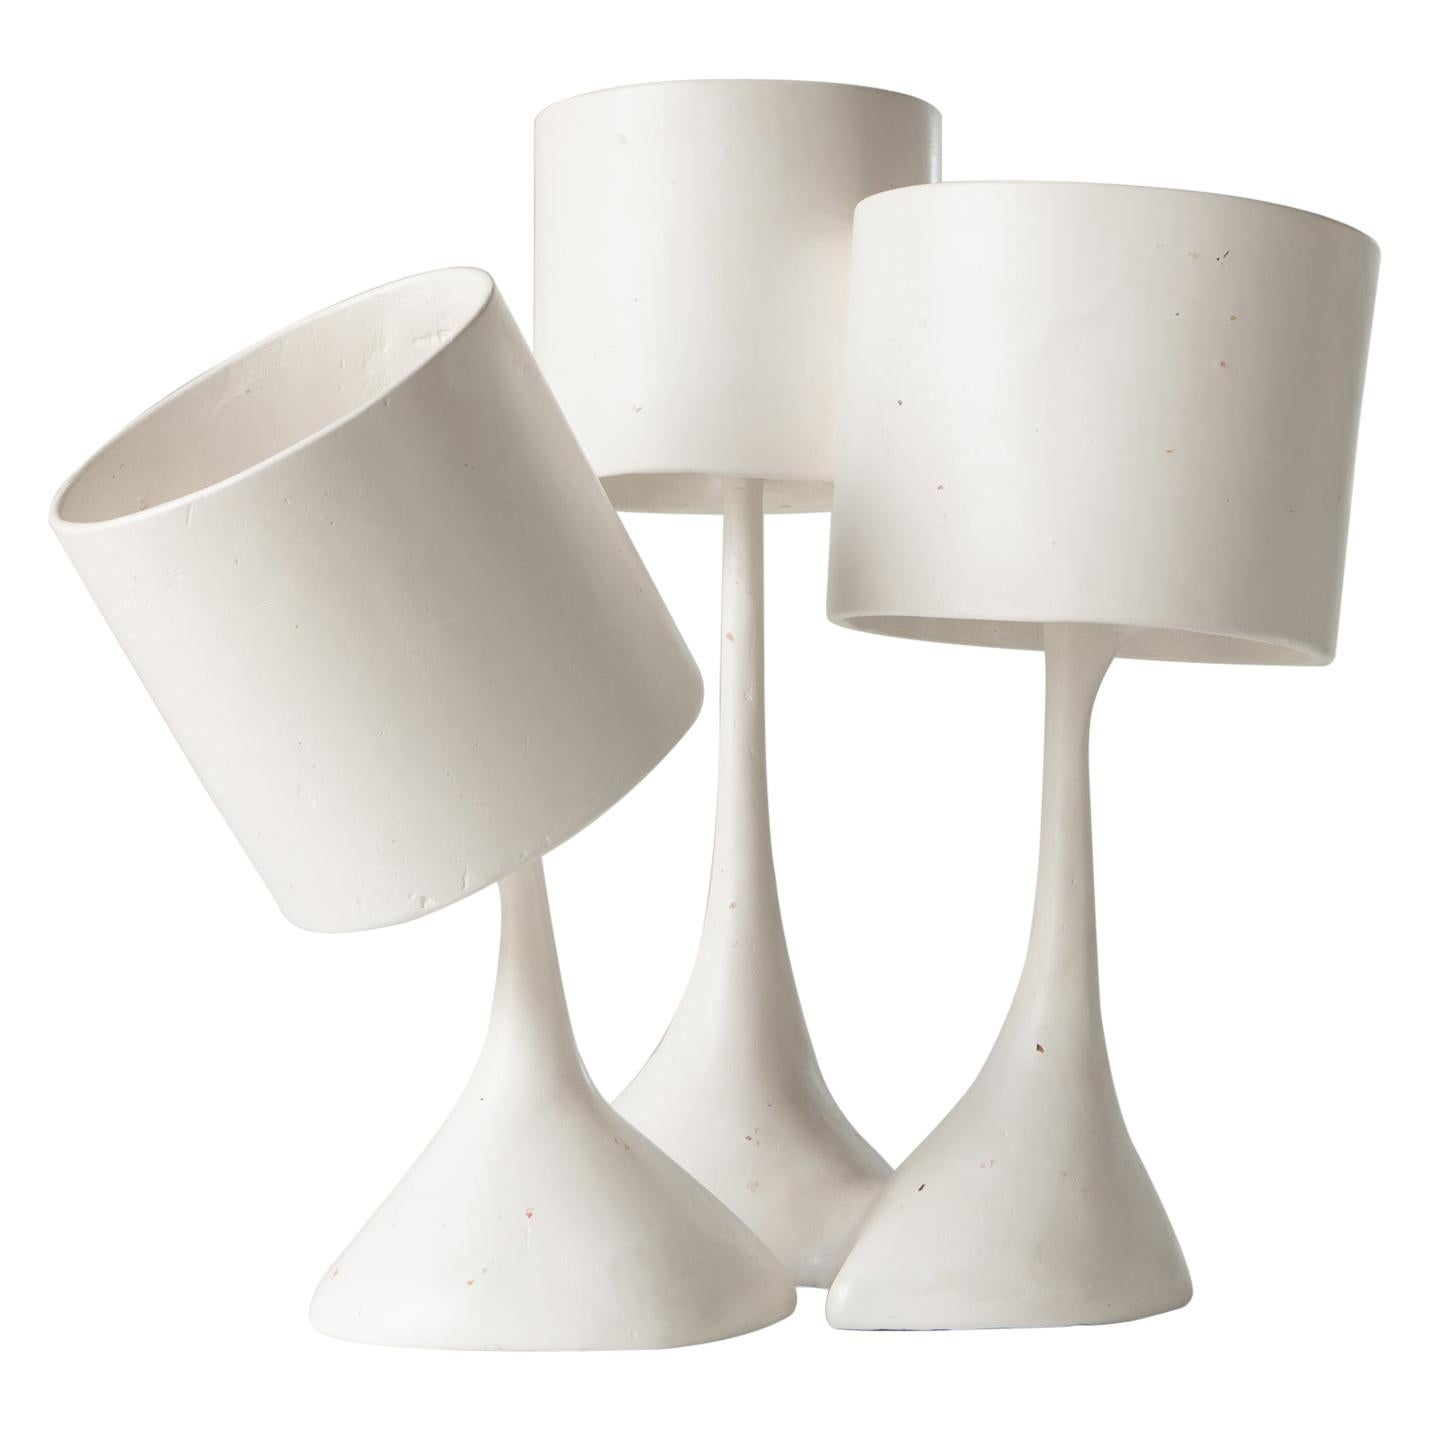 Les Trois Triste Table Lamp in Polished Gypsum Plaster by Reynold Rodriguez